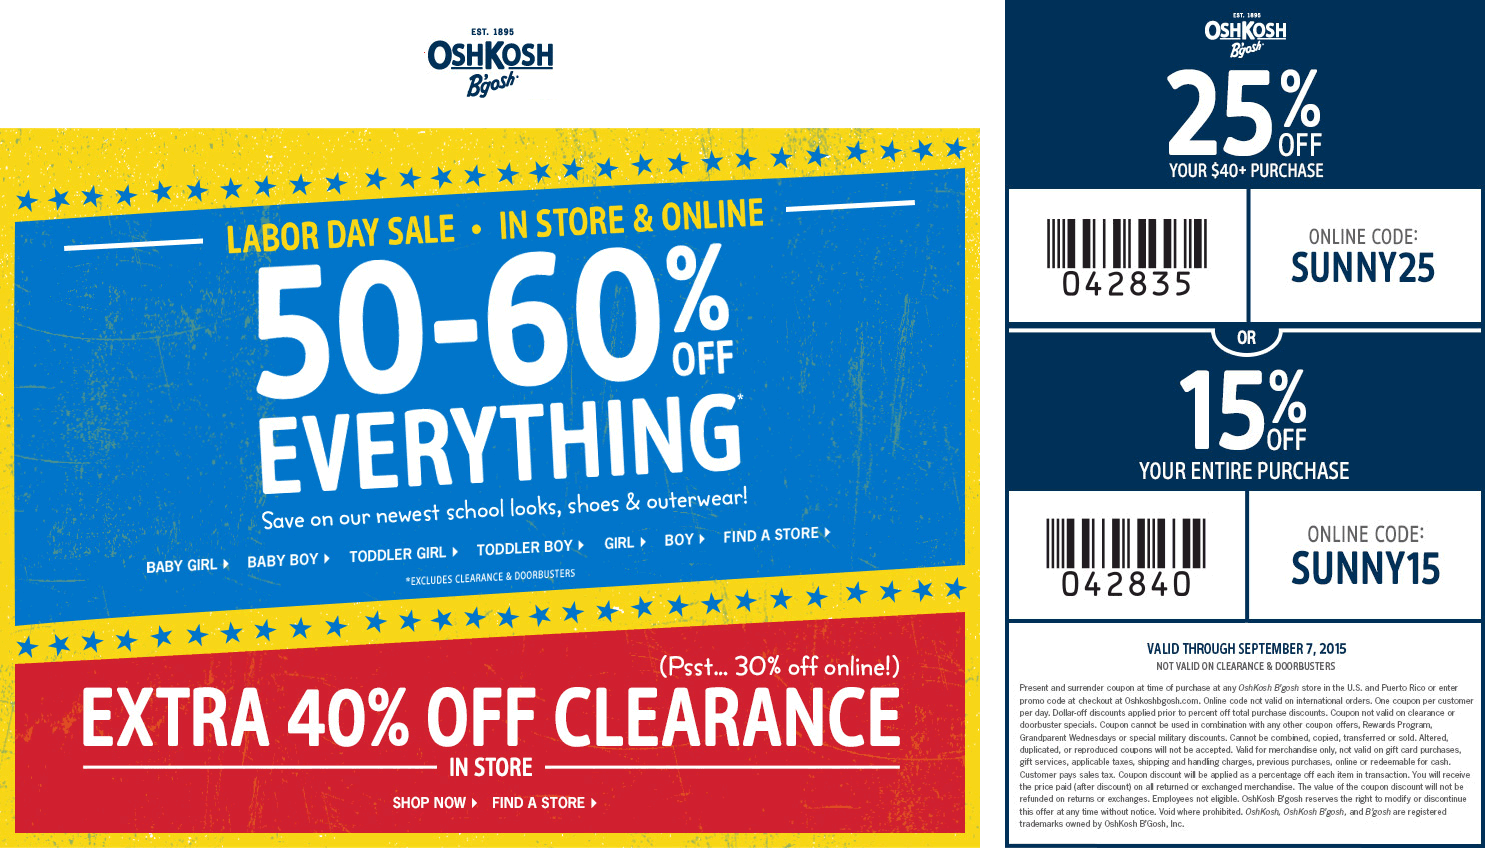 OshKosh Bgosh Coupon November 2017 50-60% off everything + 25% off $40+ at OshKosh Bgosh, or online via promo code SUNNY25